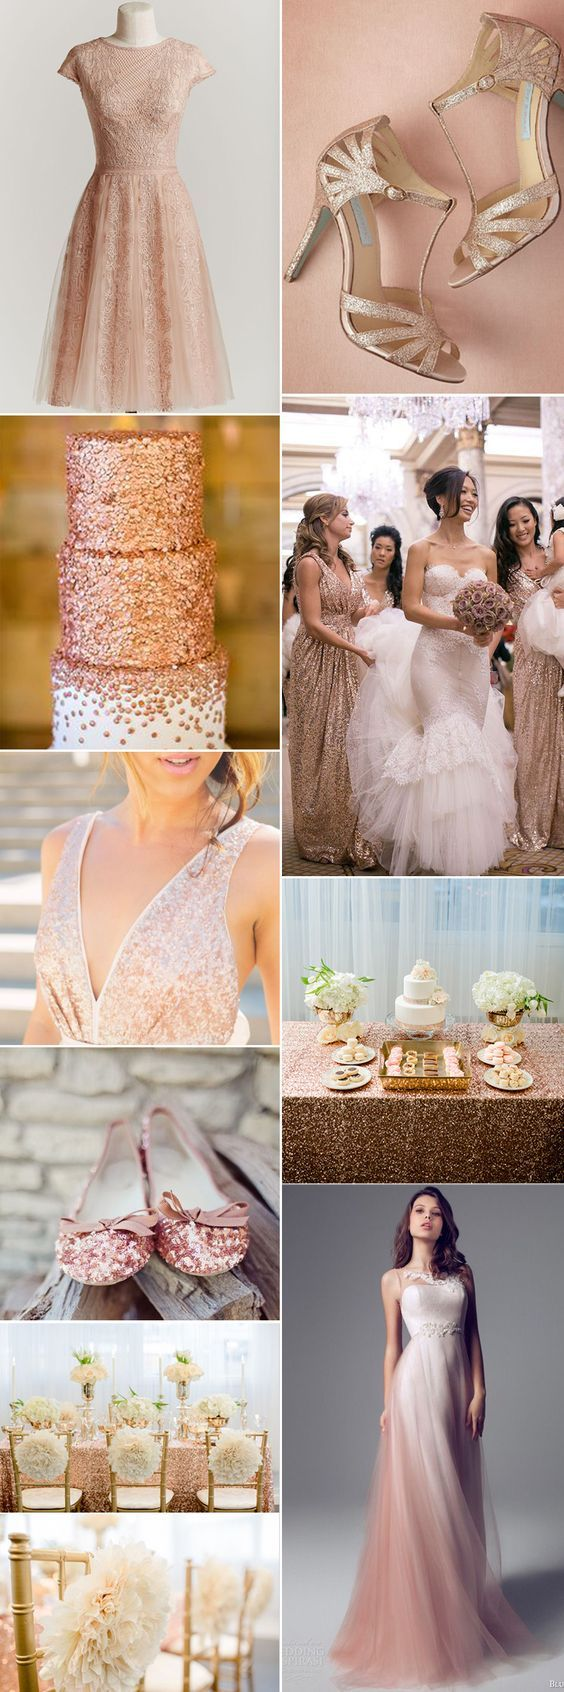 Metallic rose gold creates the most romantic wedding day theme - GS Inspiration on Glitzy Secrets: